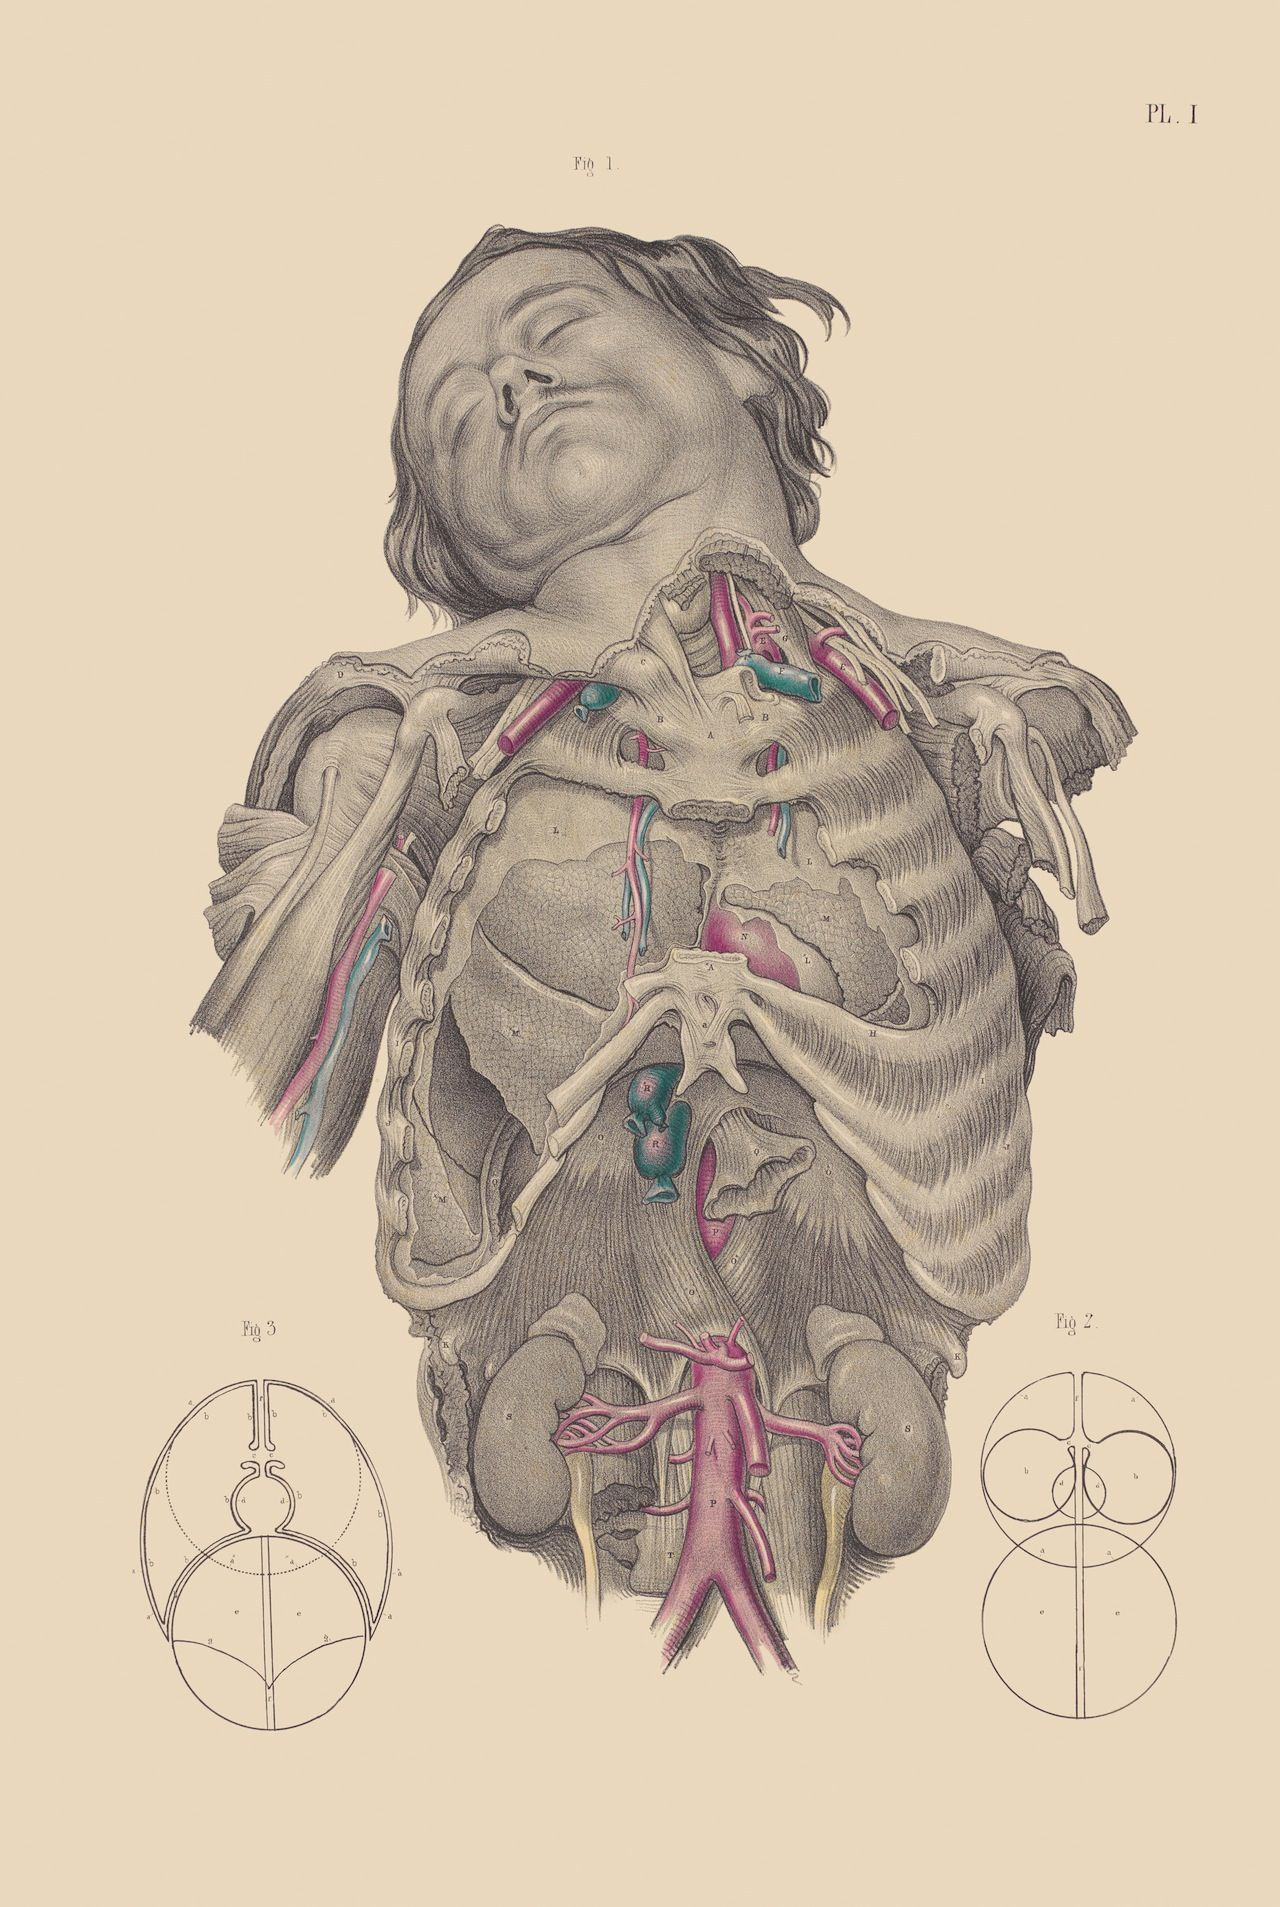 Gruesome And Surreal Surgical Illustrations From The 15th19th